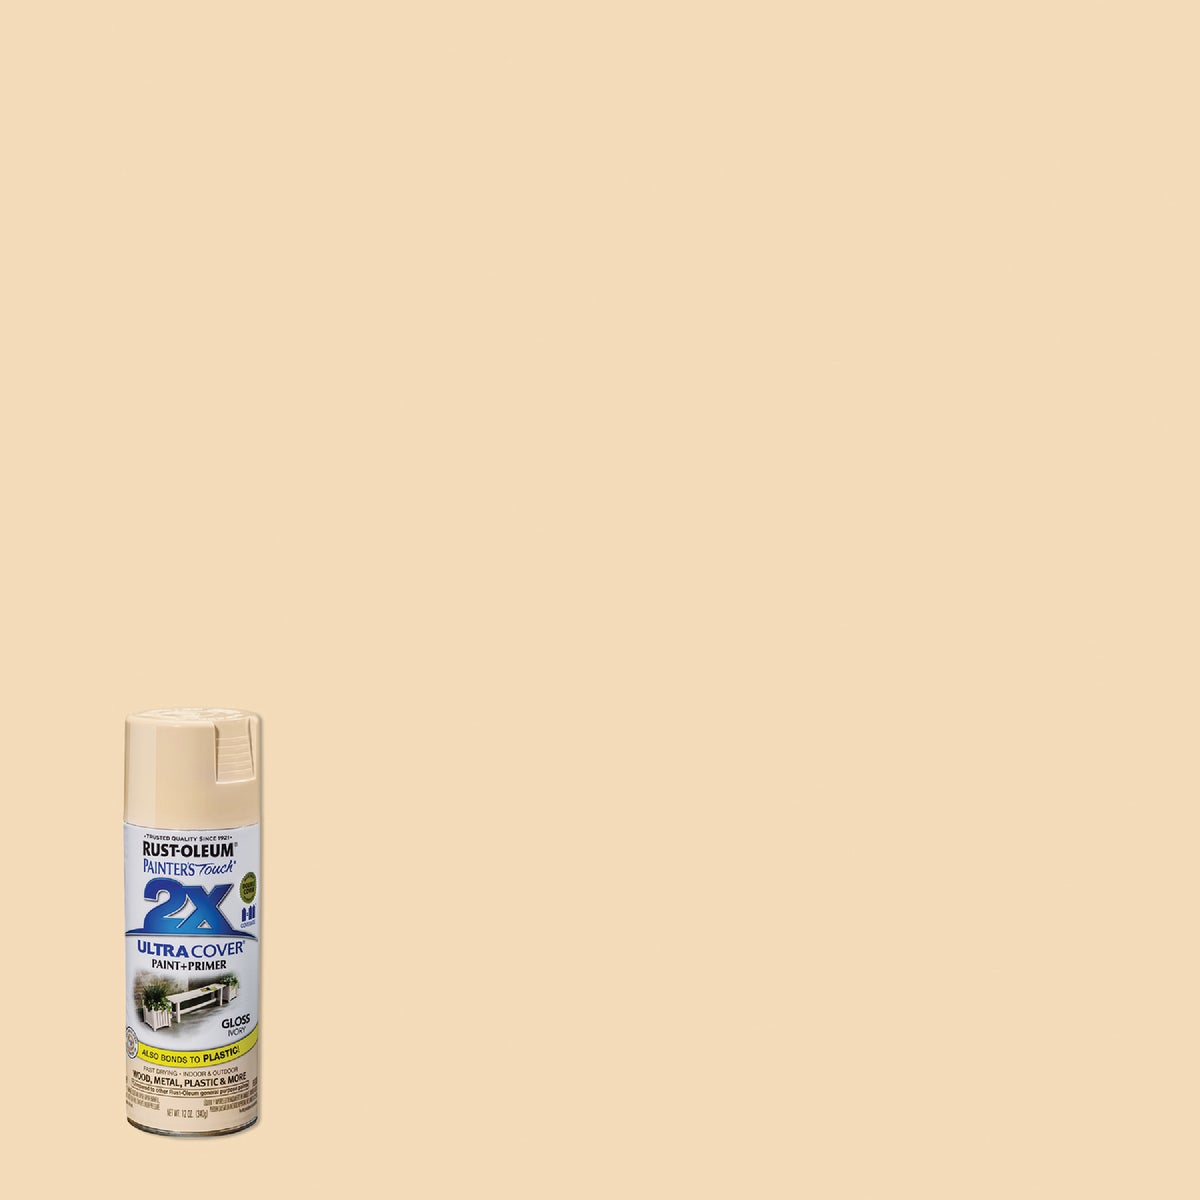 IVORY SPRAY PAINT - 249110 by Rustoleum